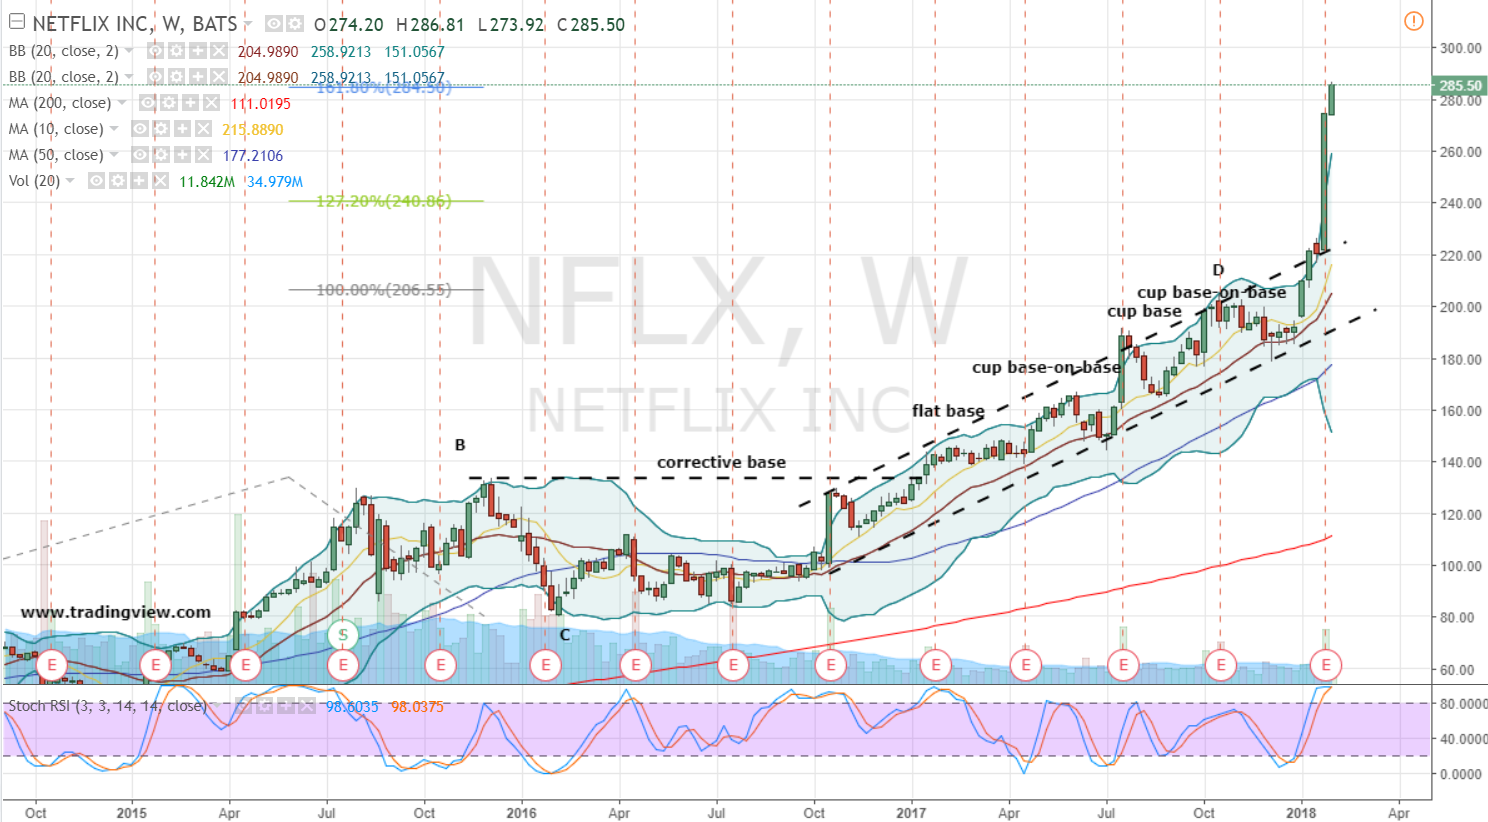 Featured Stock Overview: Netflix, Inc. (NASDAQ:NFLX)